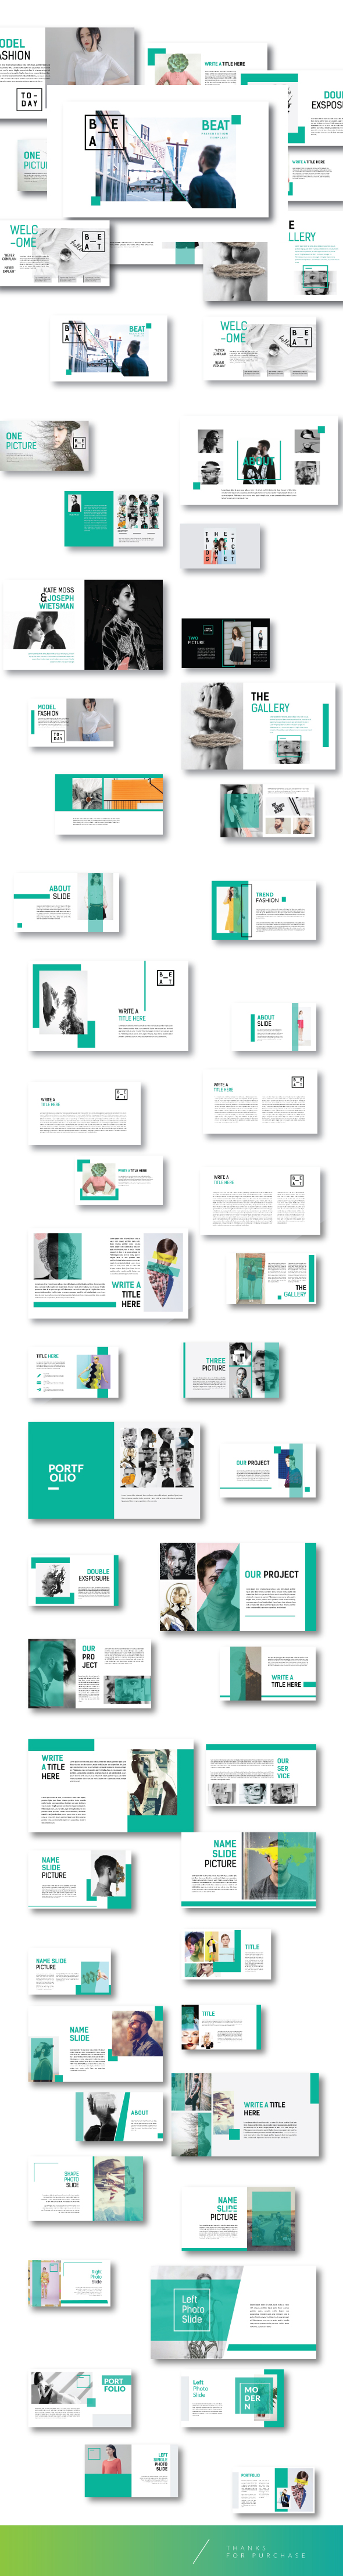 Multipurpose Creative Template Powerpoint - Business PowerPoint Templates